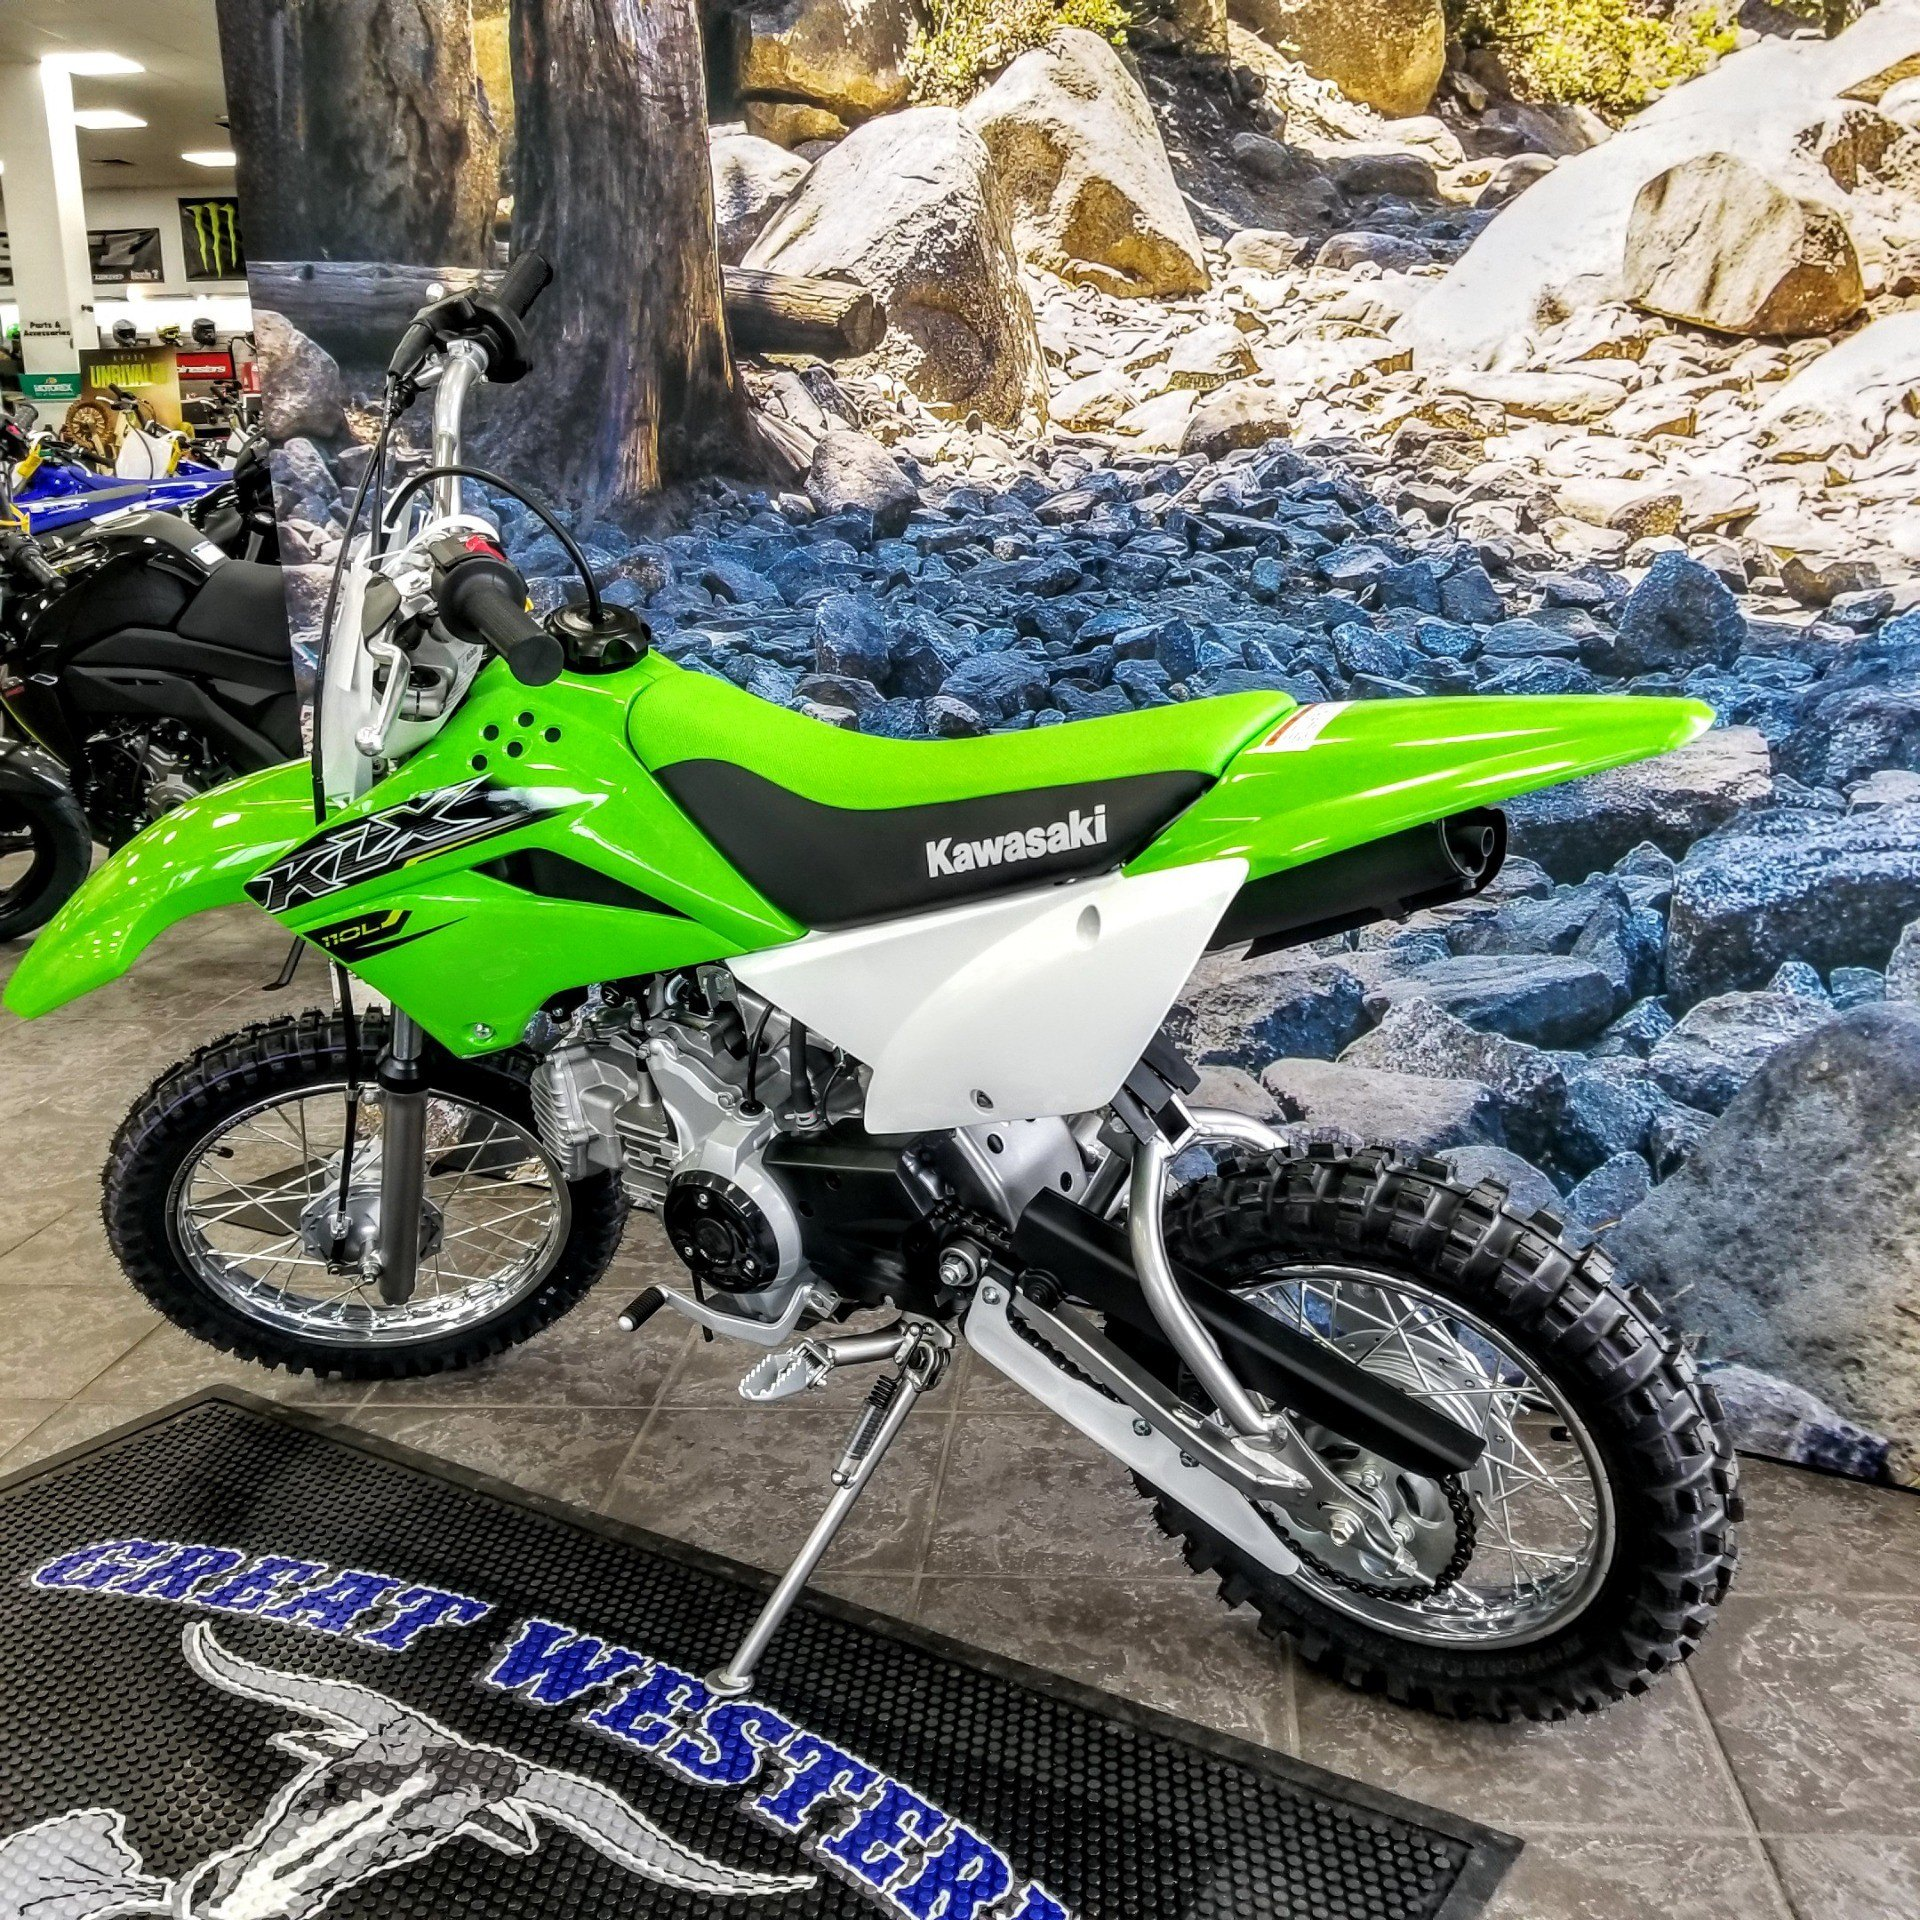 marshin atv 250 wiring new 2019 kawasaki klx 110l motorcycles in  hickory, nc | stock number kawasaki klx ignition